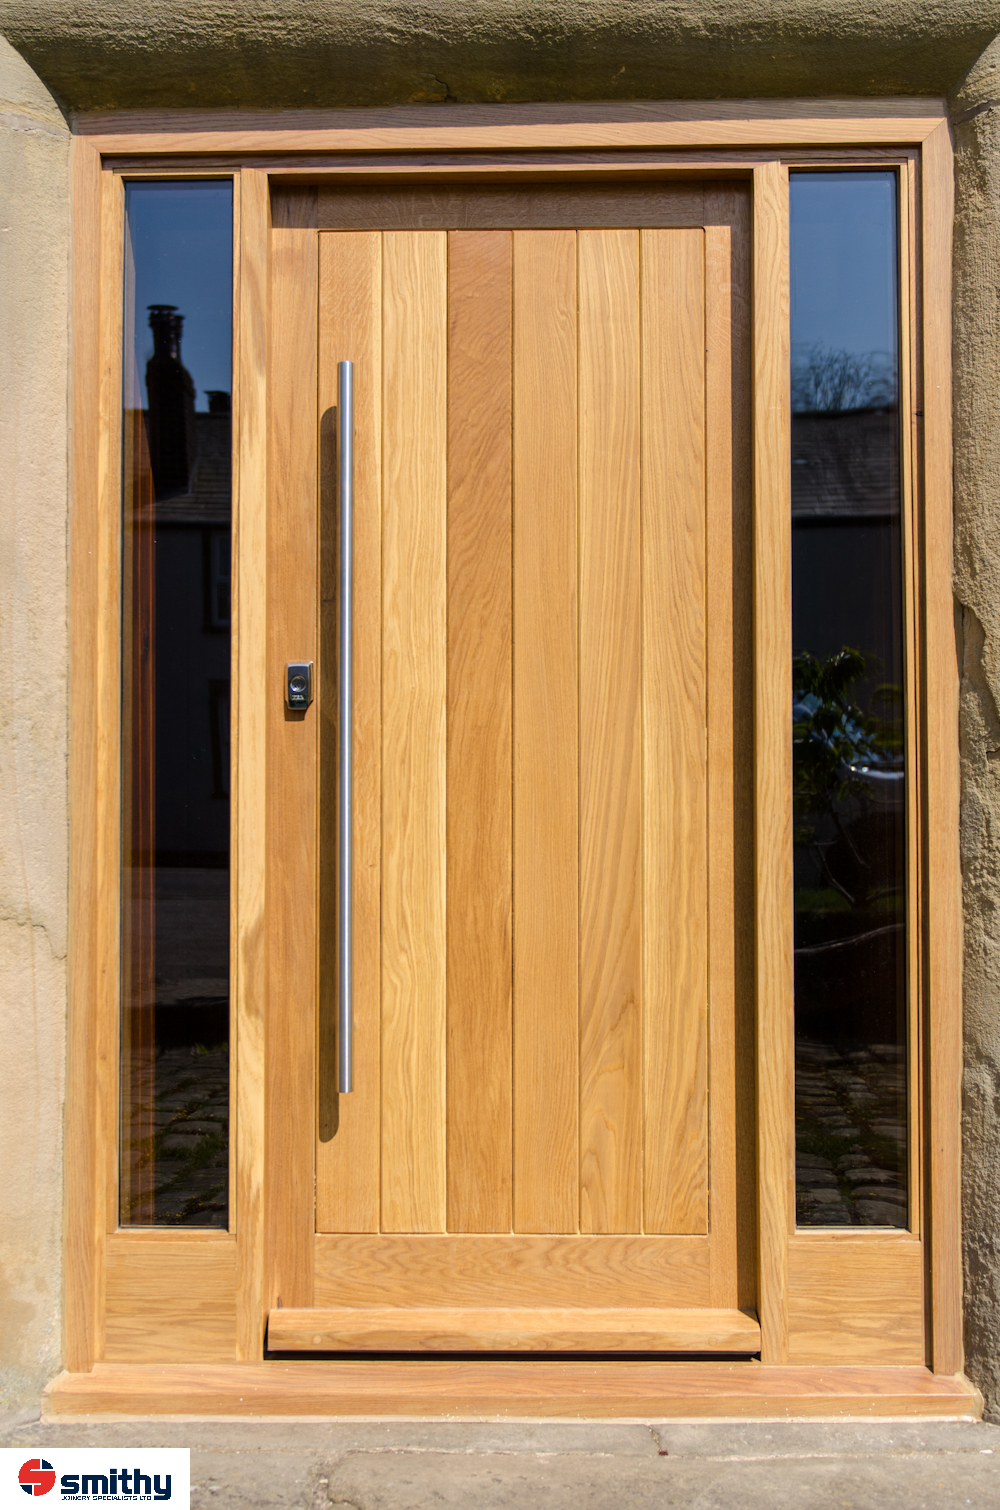 Contemporary oak doors an casing with glass lights either side.